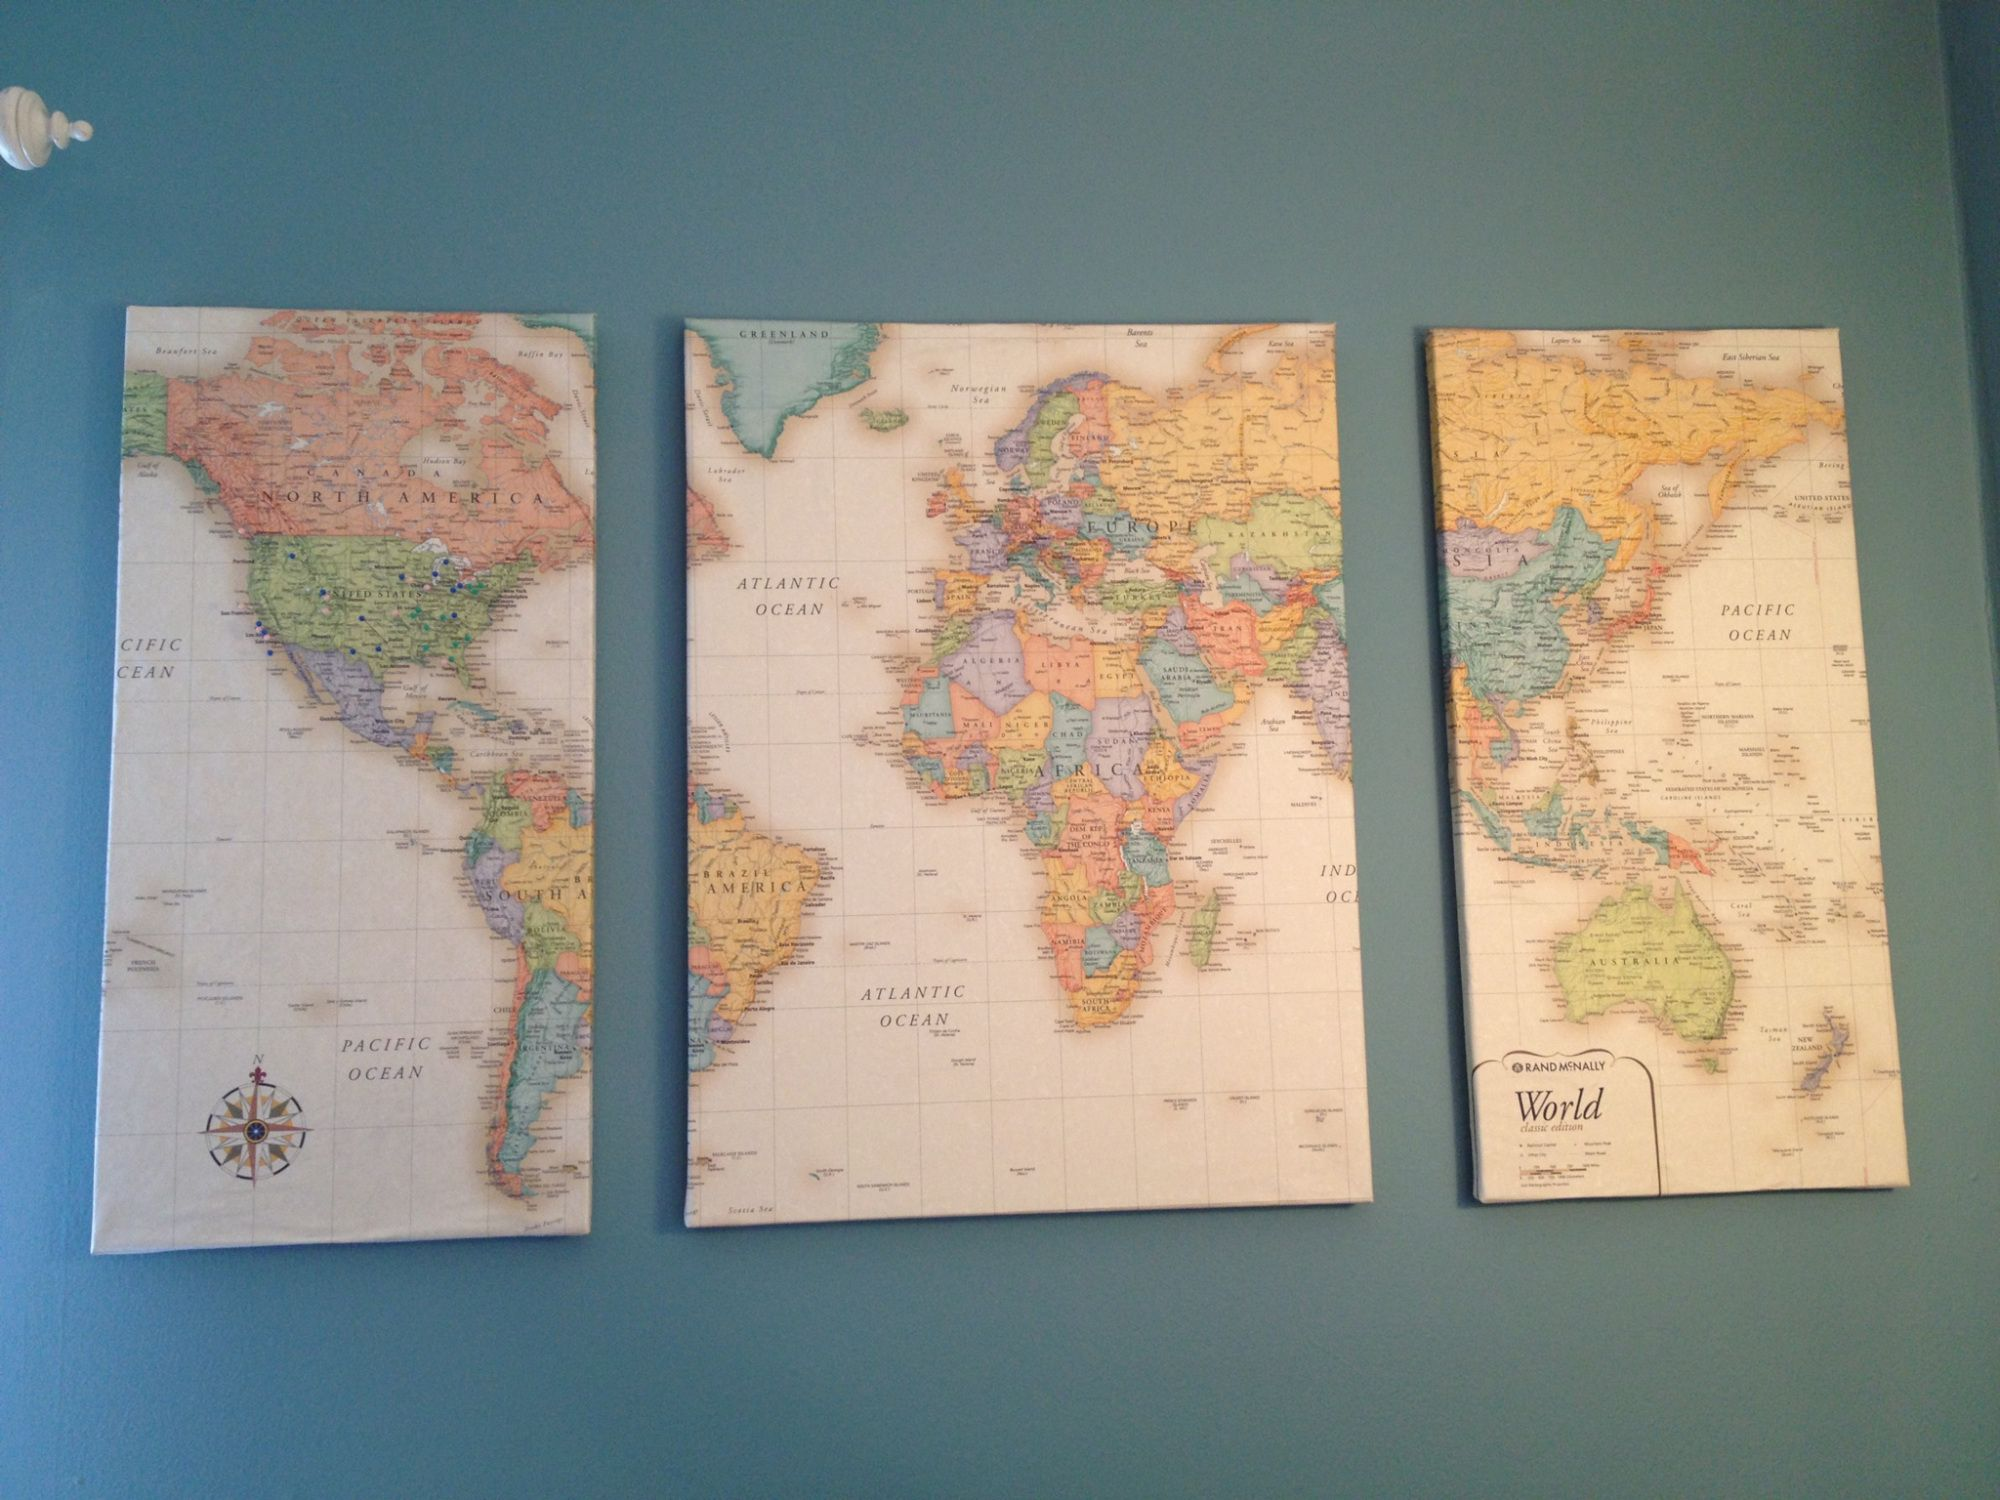 Modge podge a world map onto three separate canvases school stuff lay a world map over 3 canvas cut into 3 pieces coat each canvas with mod podge and wrap the maps around them like presents let dry and hang on the wall gumiabroncs Choice Image